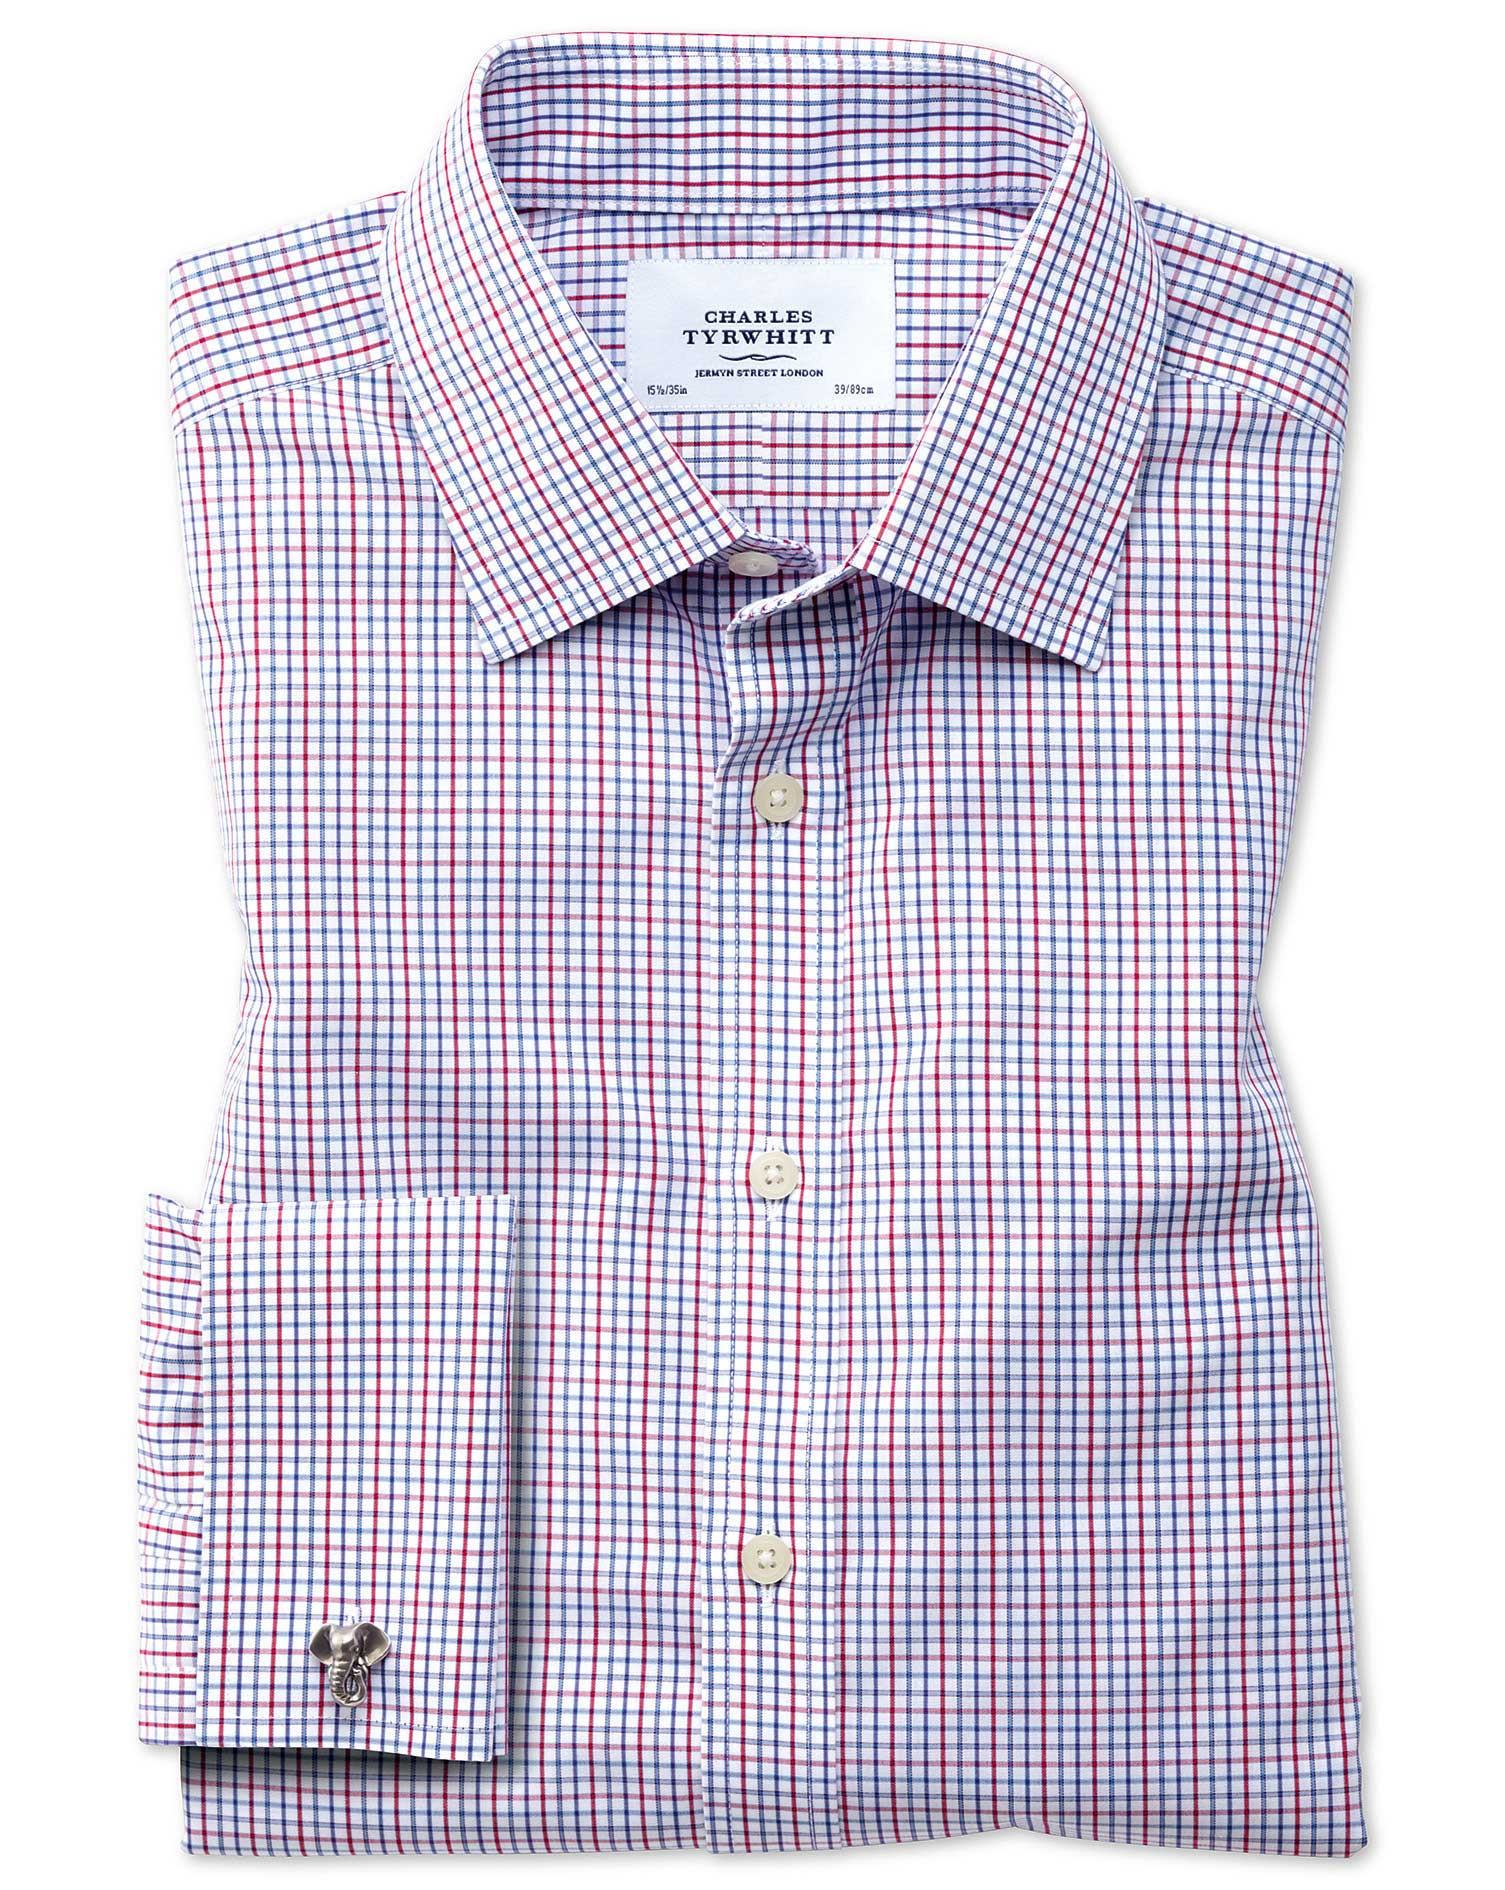 Slim Fit Non-Iron Grid Check Multi Cotton Formal Shirt Double Cuff Size 16/38 by Charles Tyrwhitt